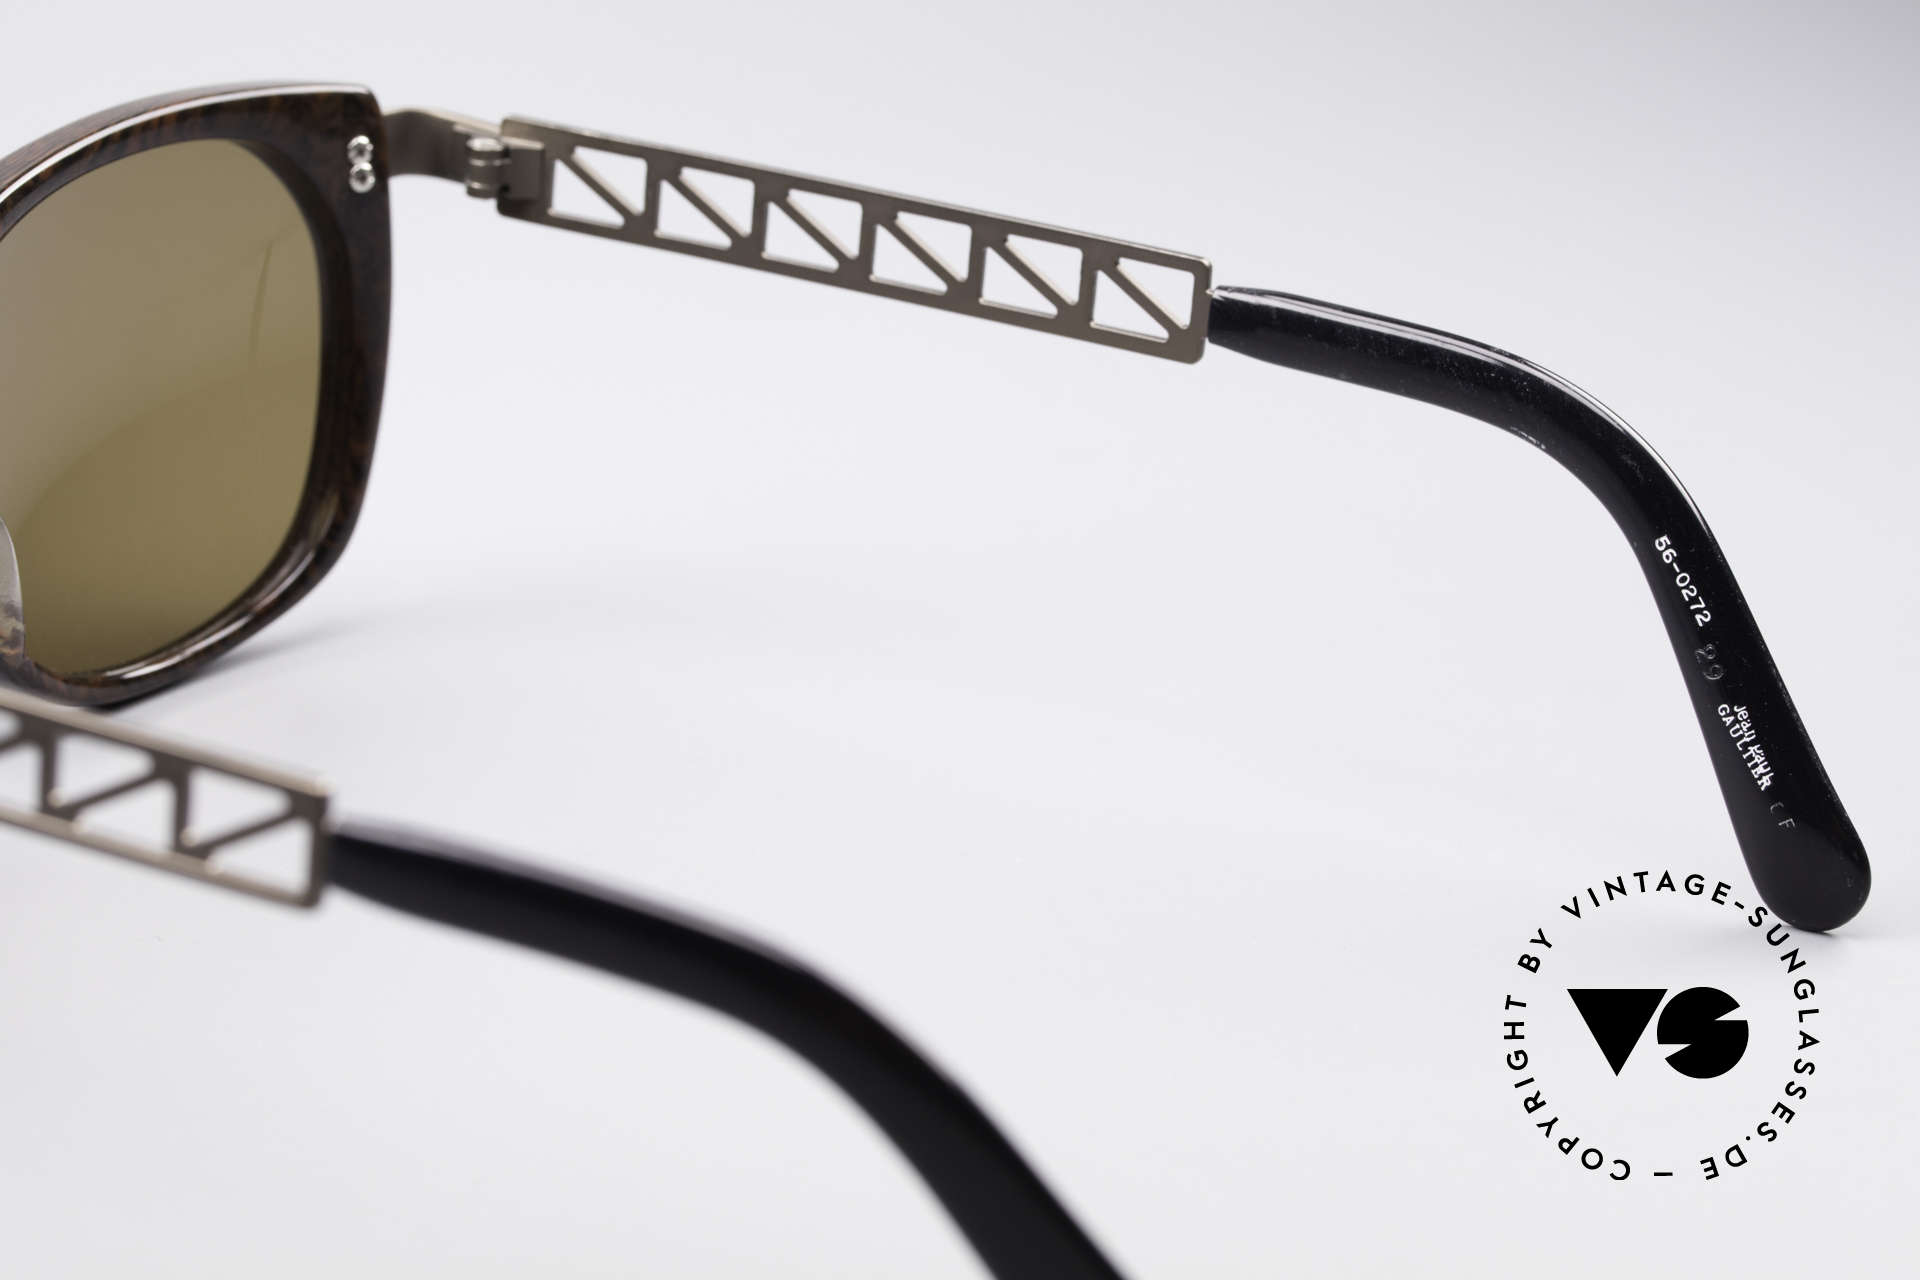 Jean Paul Gaultier 56-0272 Steampunk JPG Sunglasses, Size: large, Made for Men and Women